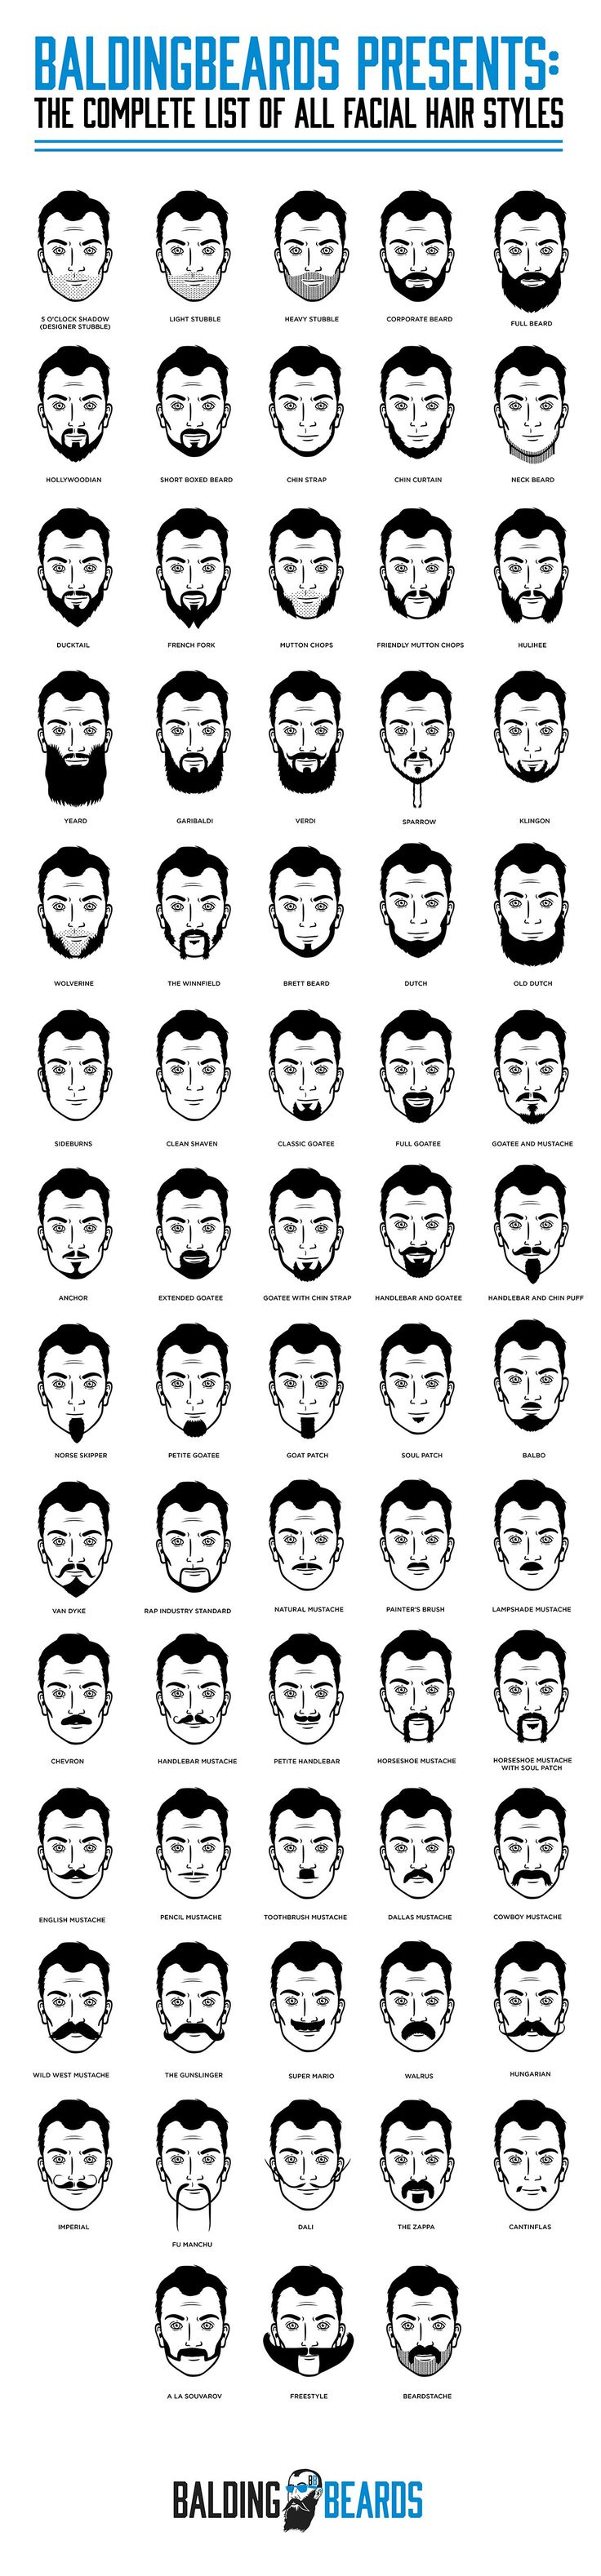 The Complete List Of All Facial Hair Styles #Infographic #LifeStyle